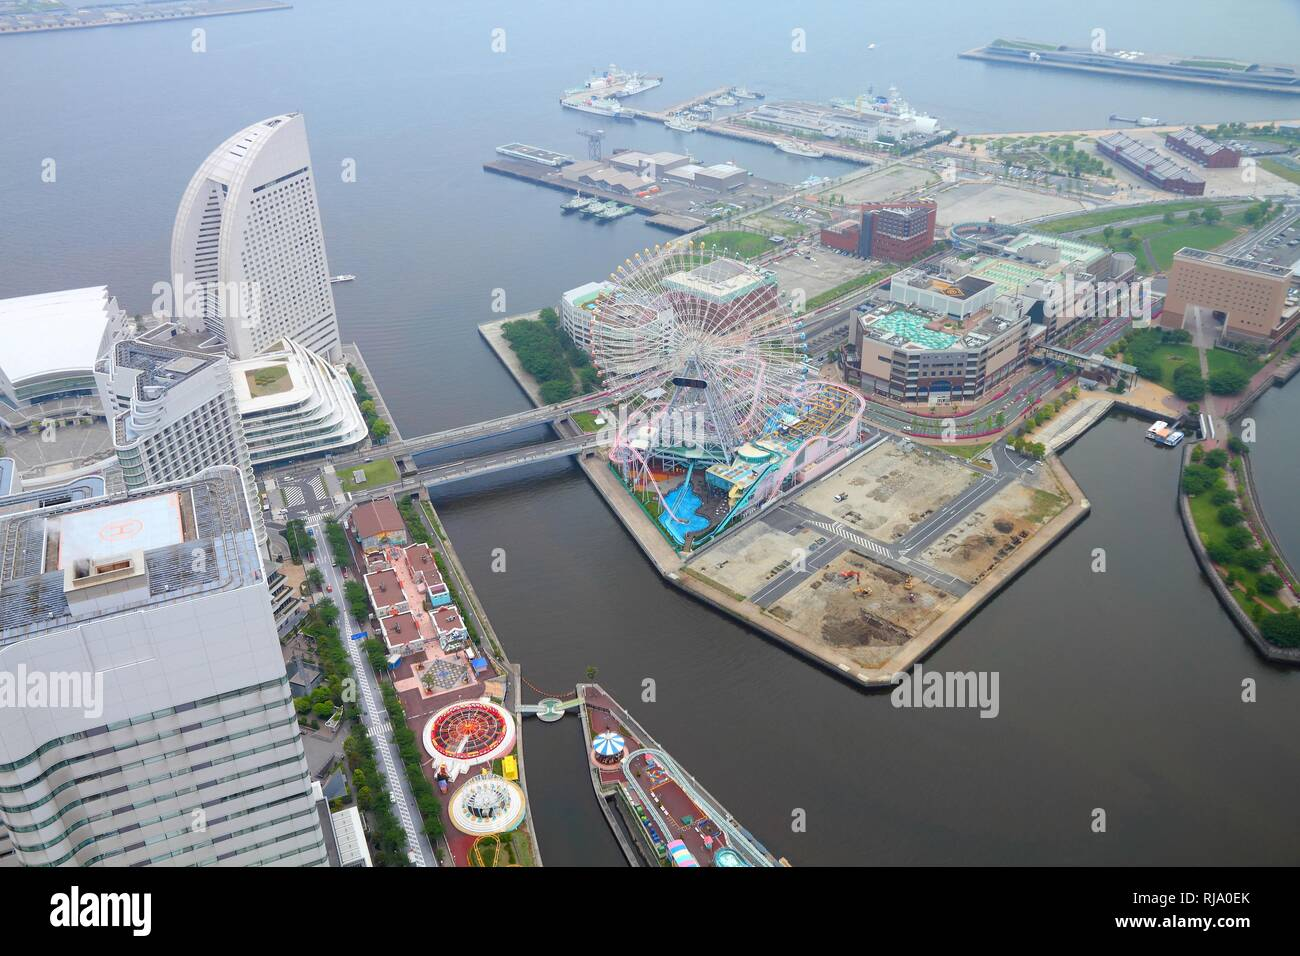 Yokohama, Japan - aerial view in second largest city in Japan, capital city of Kanagawa prefecture - Stock Image